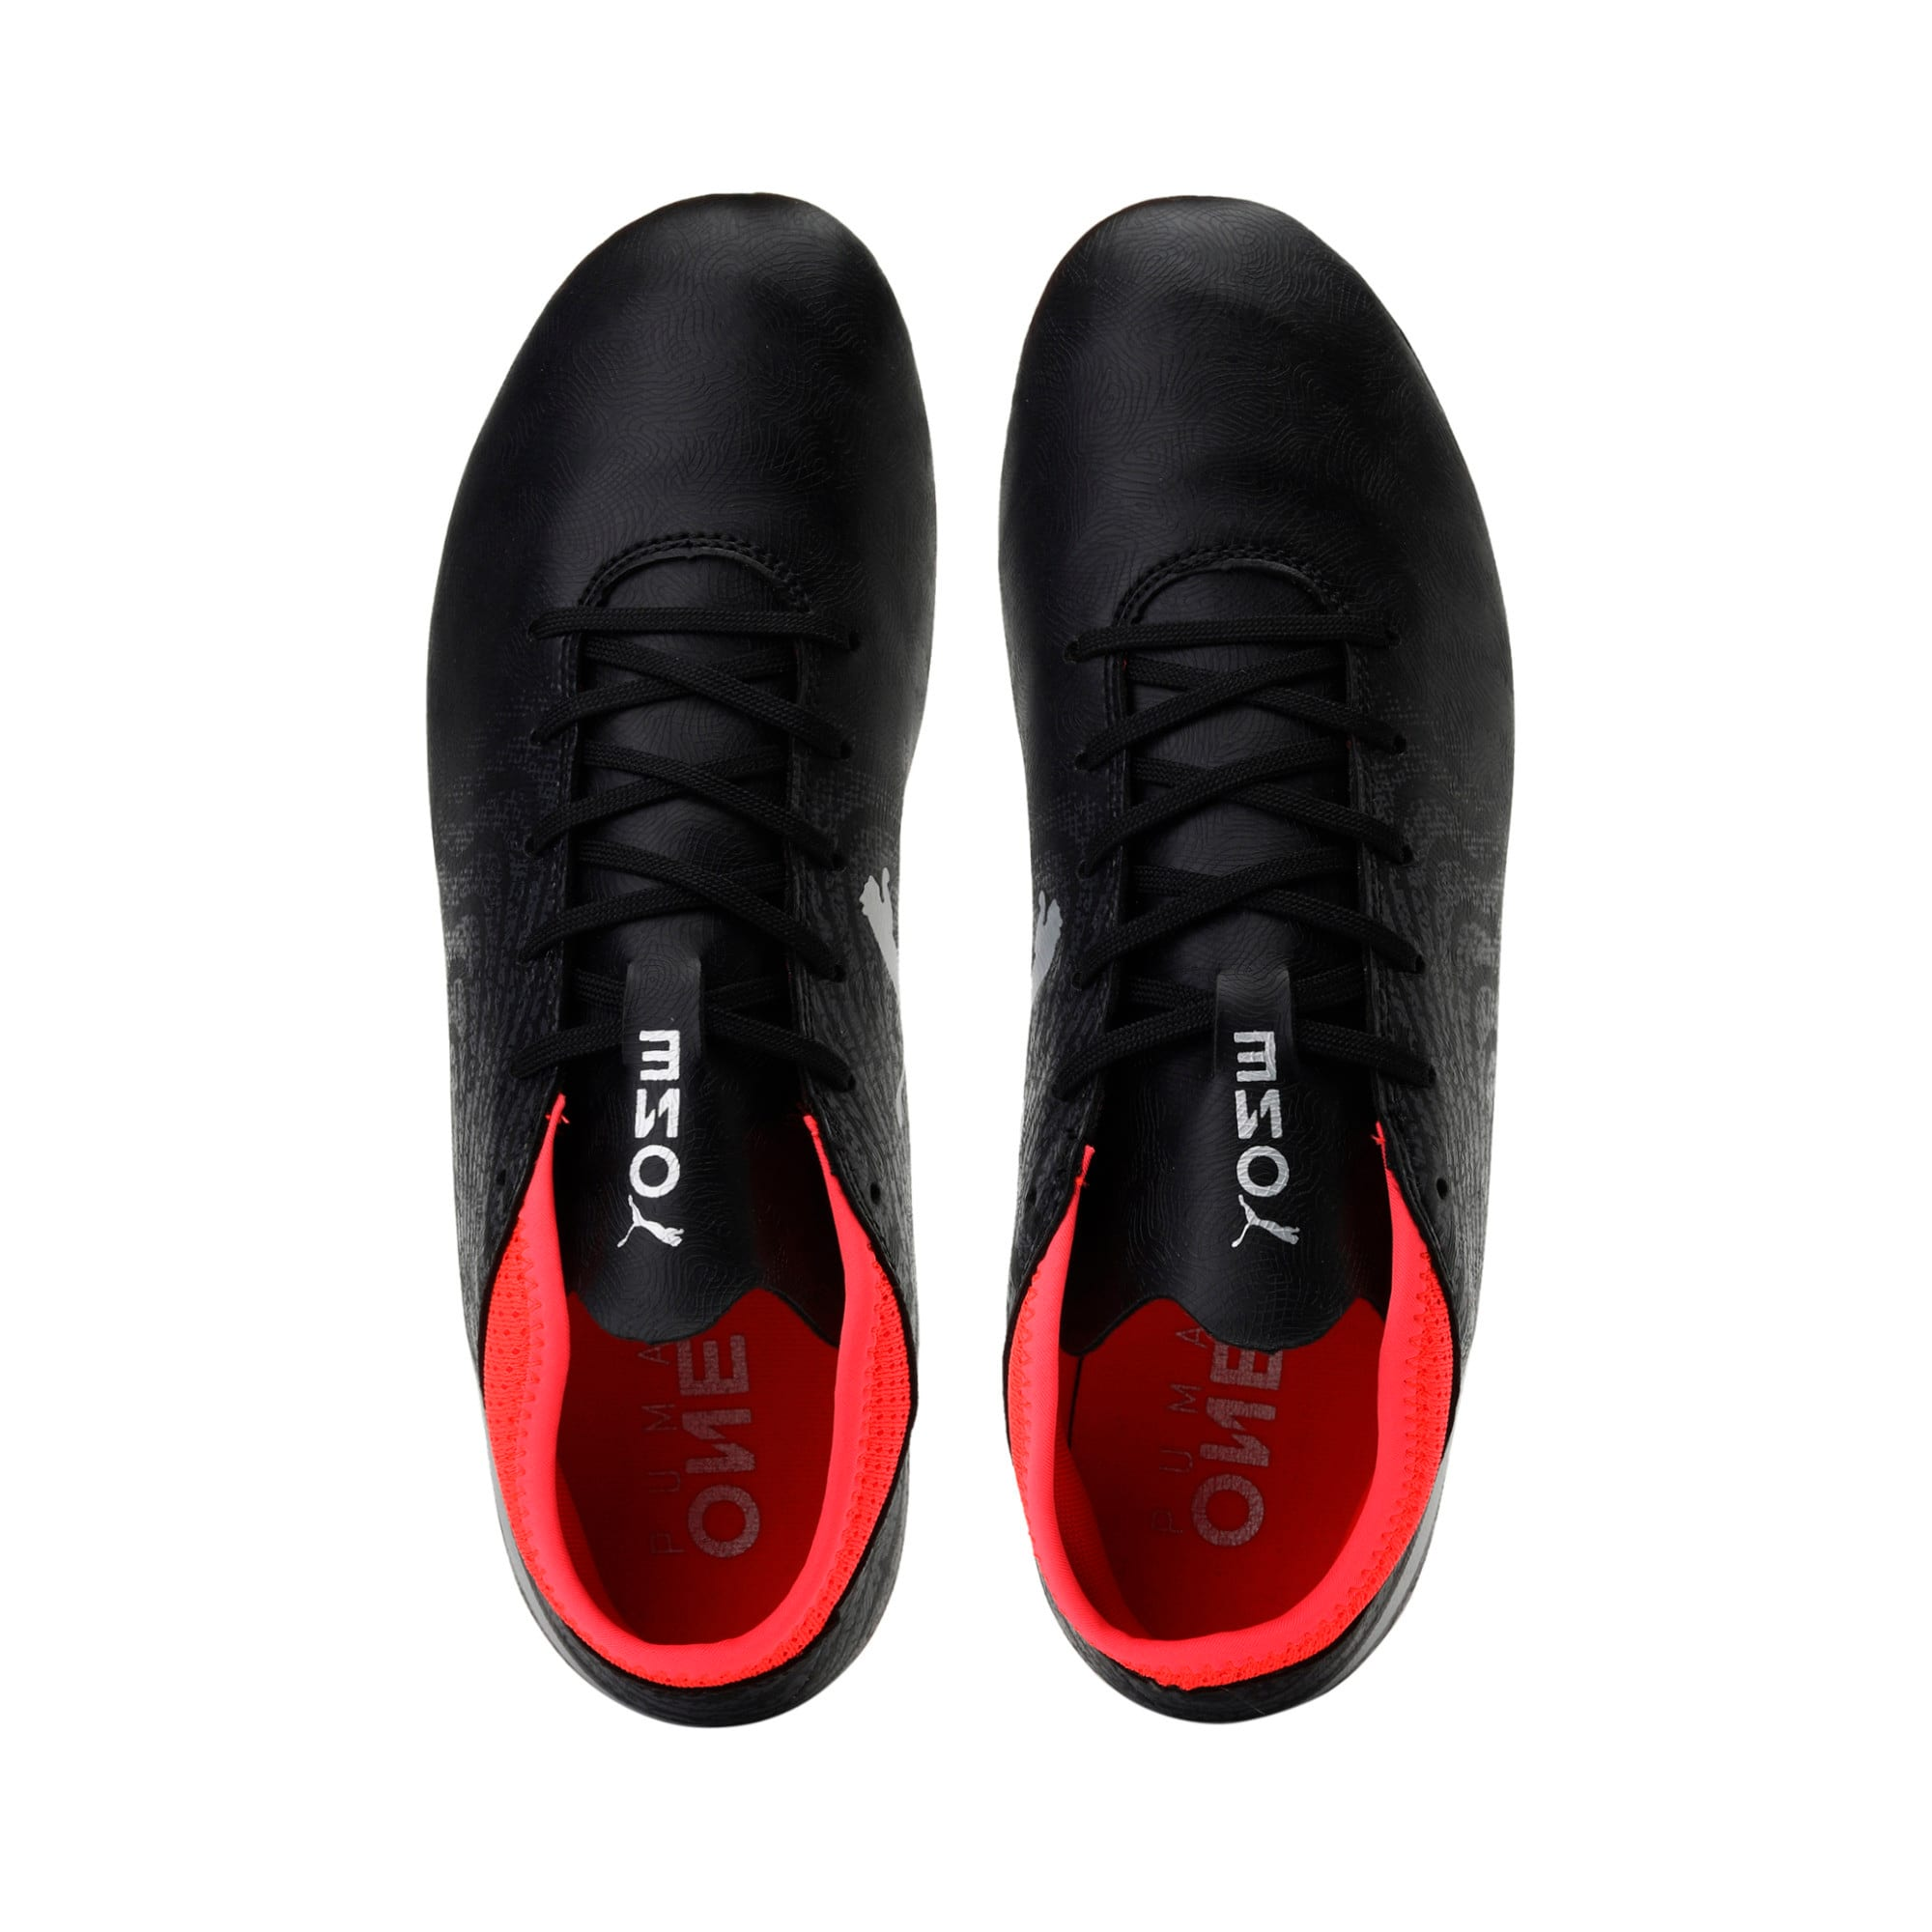 Thumbnail 6 of ONE 18.4 FG Men's Football Boots, Black-Silver-Red, medium-IND